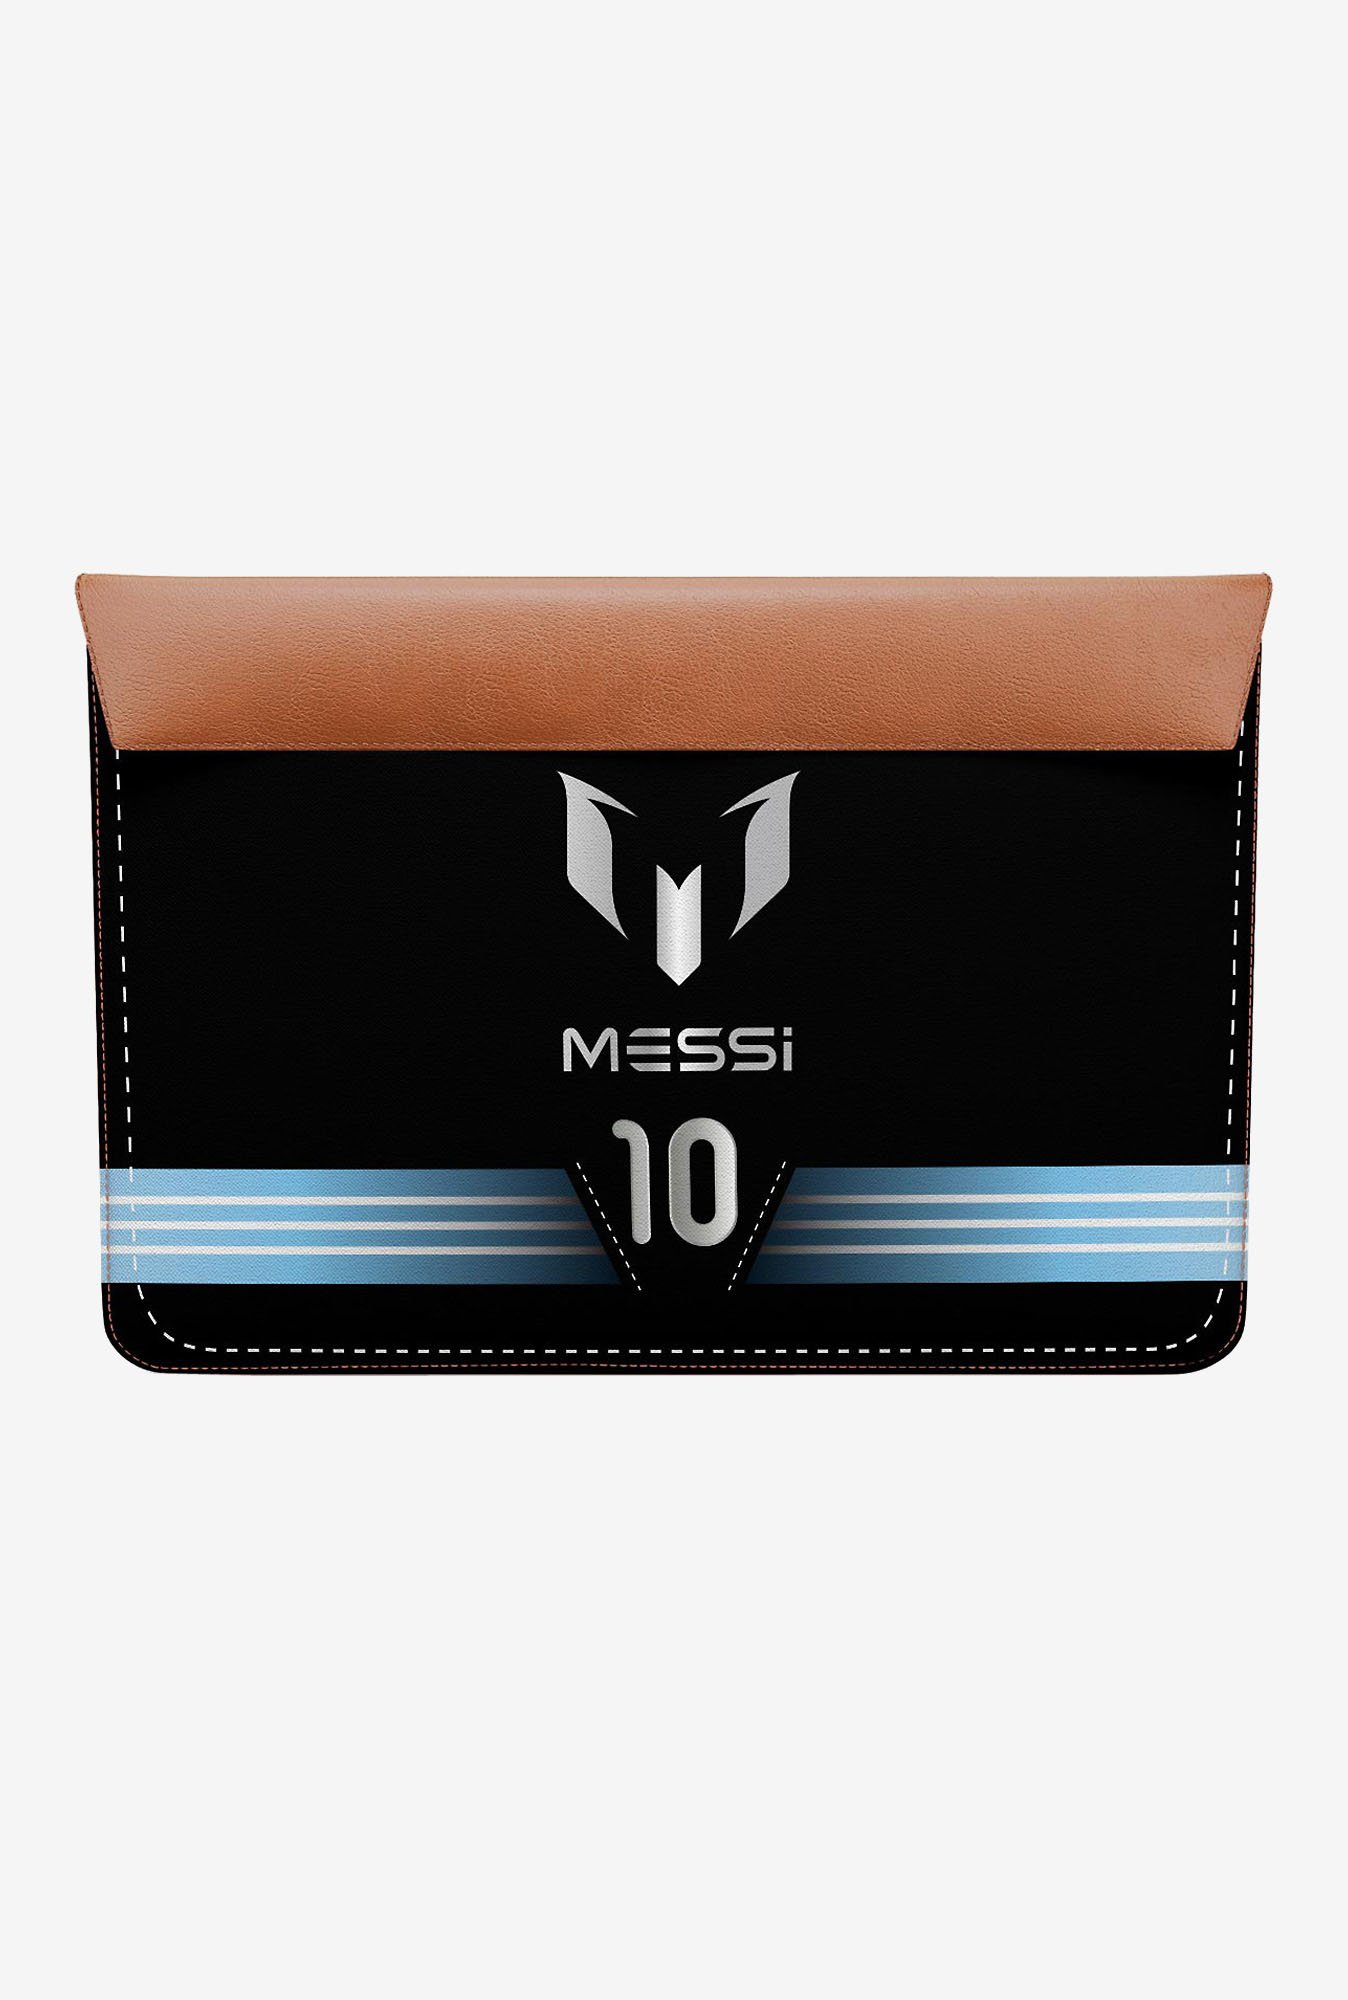 DailyObjects Messi Stripe MacBook 12 Envelope Sleeve